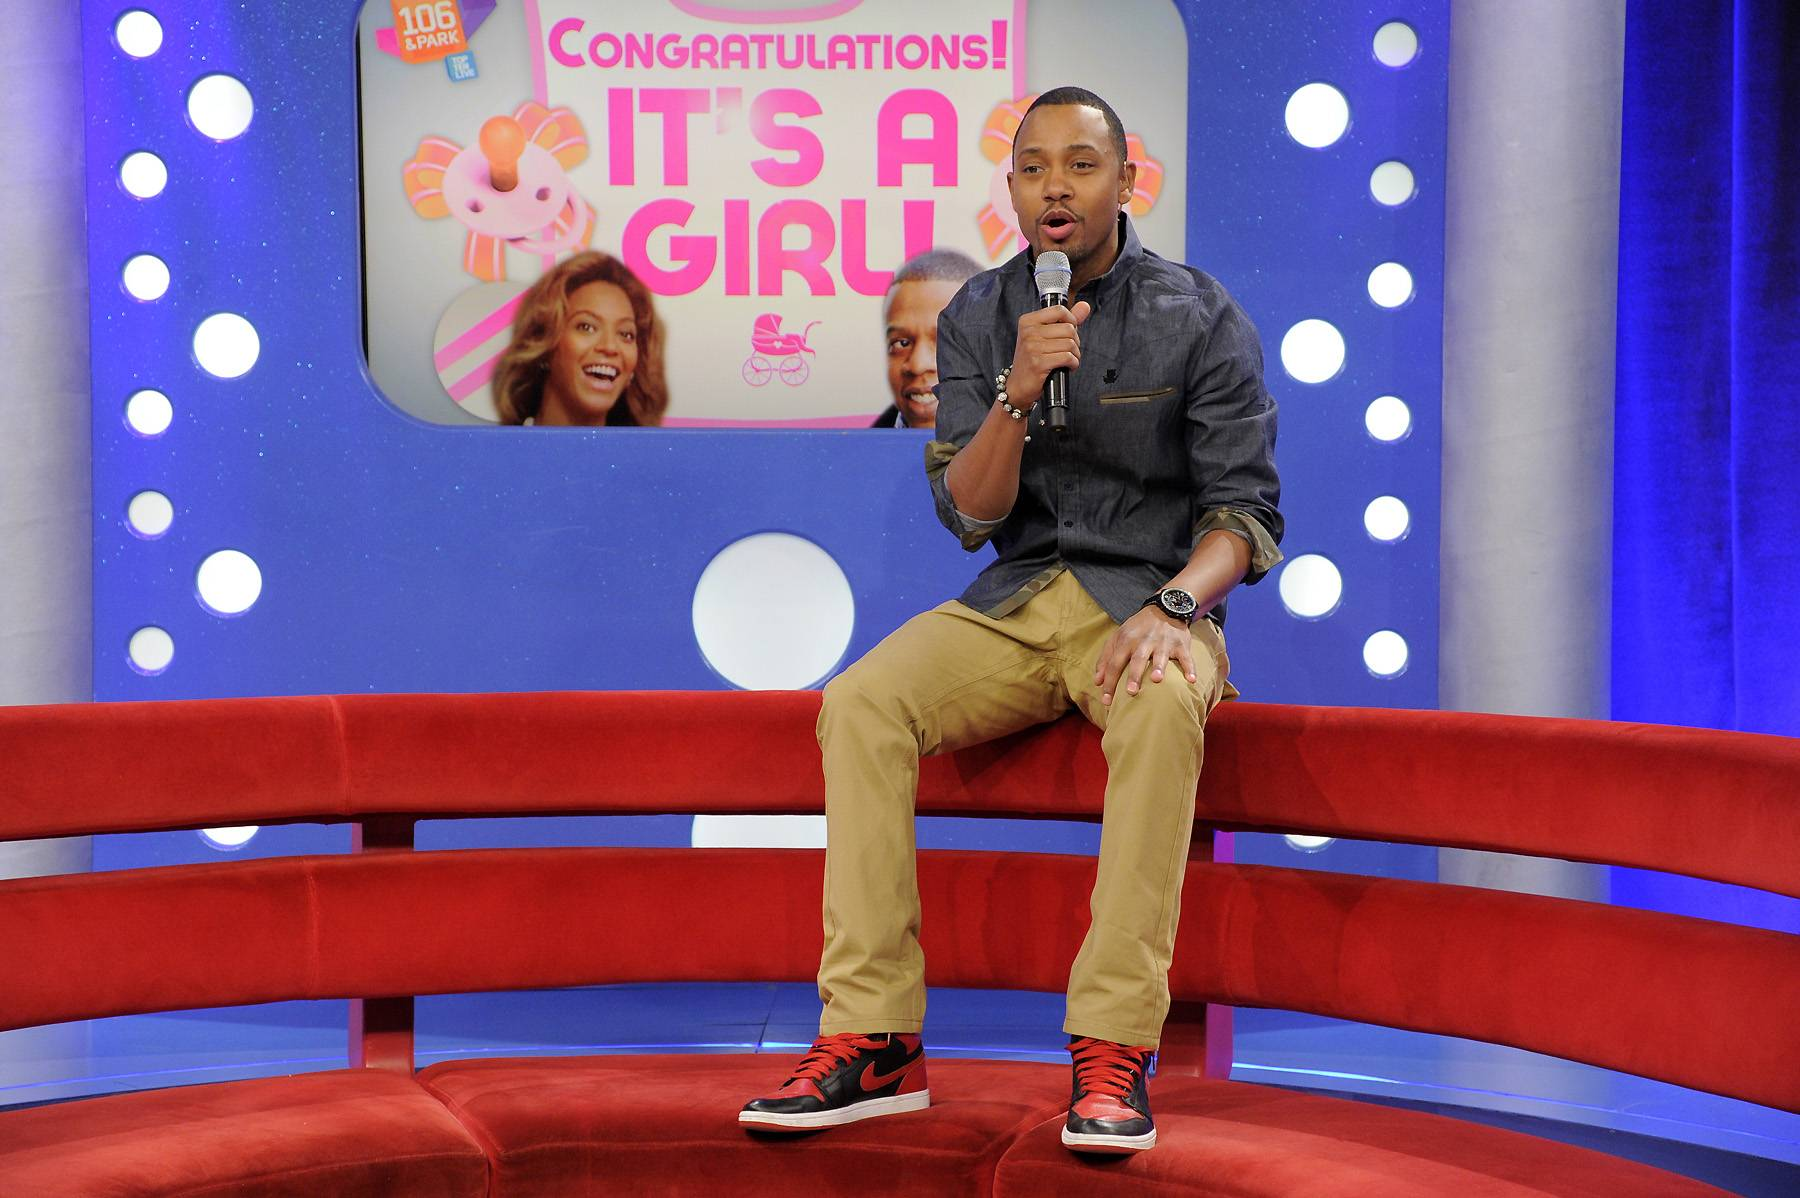 Hear This - Terrence J tells the audience that Jay-Z and Beyonce's daughter is the youngest person to ever be featured on a Billboard top 100 single, at 106 & Park, January 12, 2012. (Photo: John Ricard / BET)